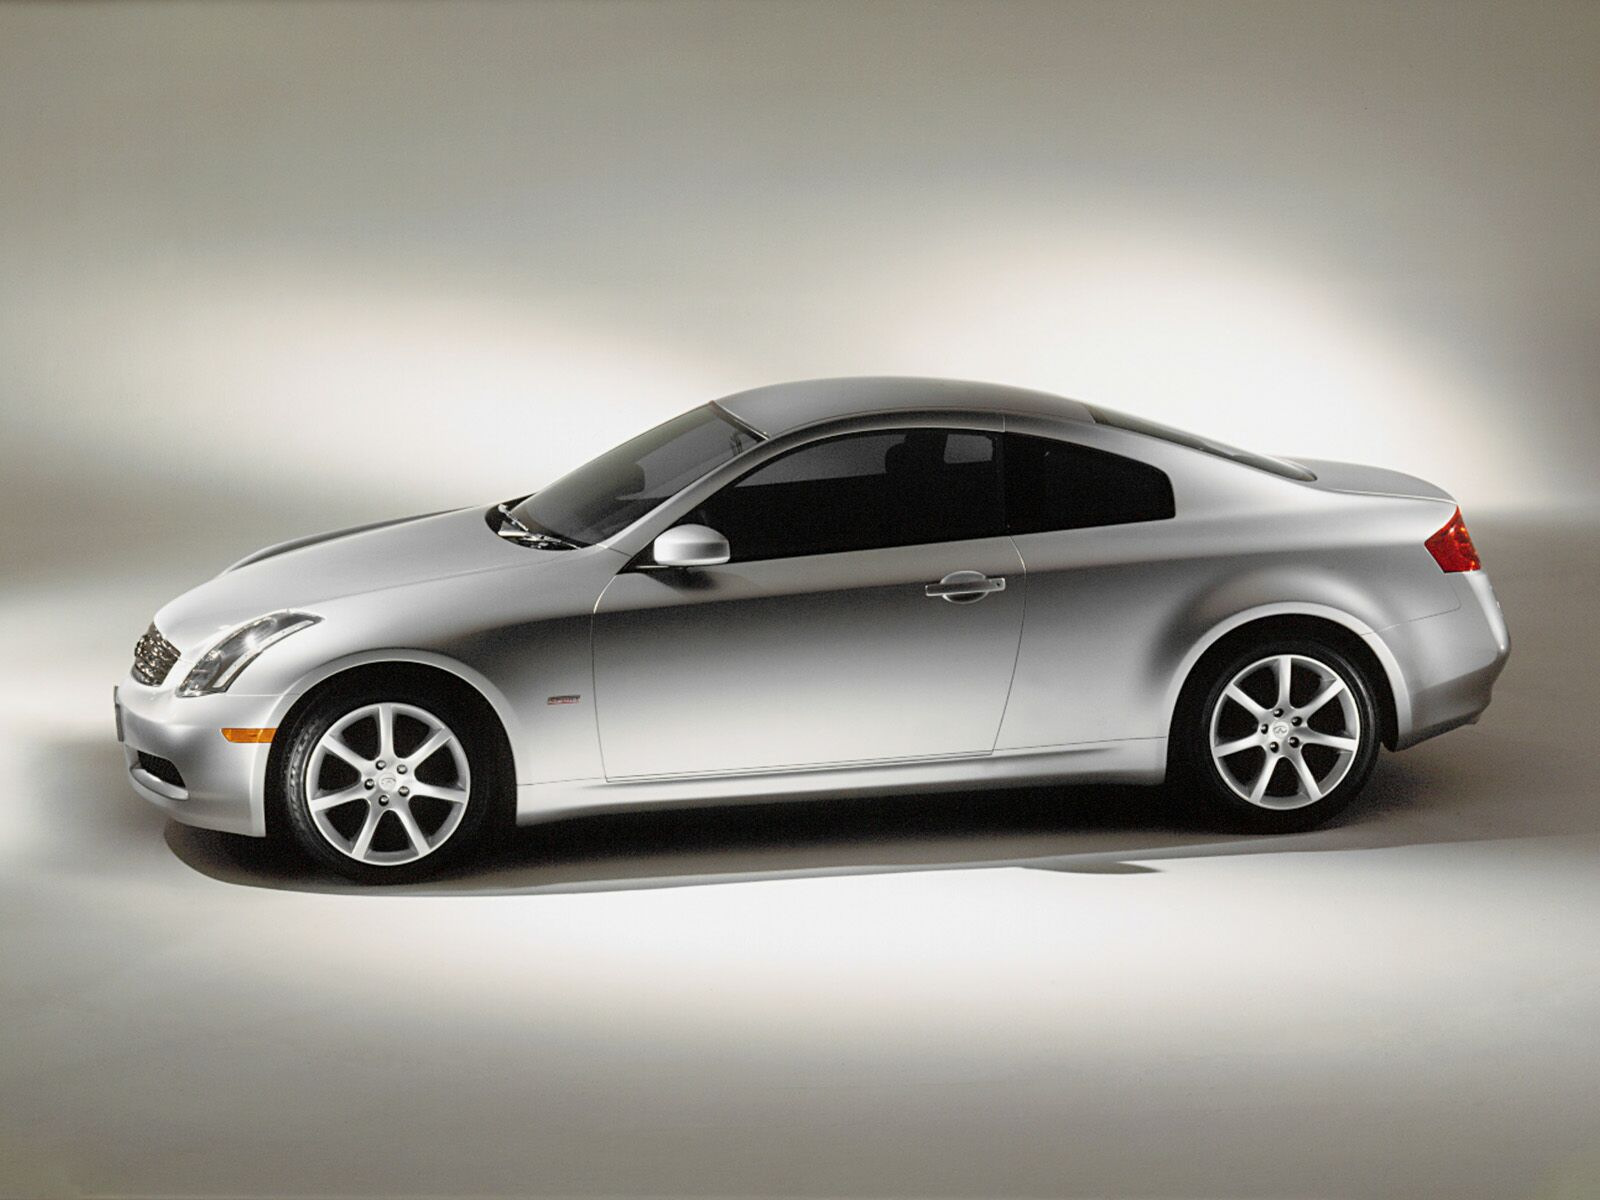 Infiniti G35 Coupe photo 8594